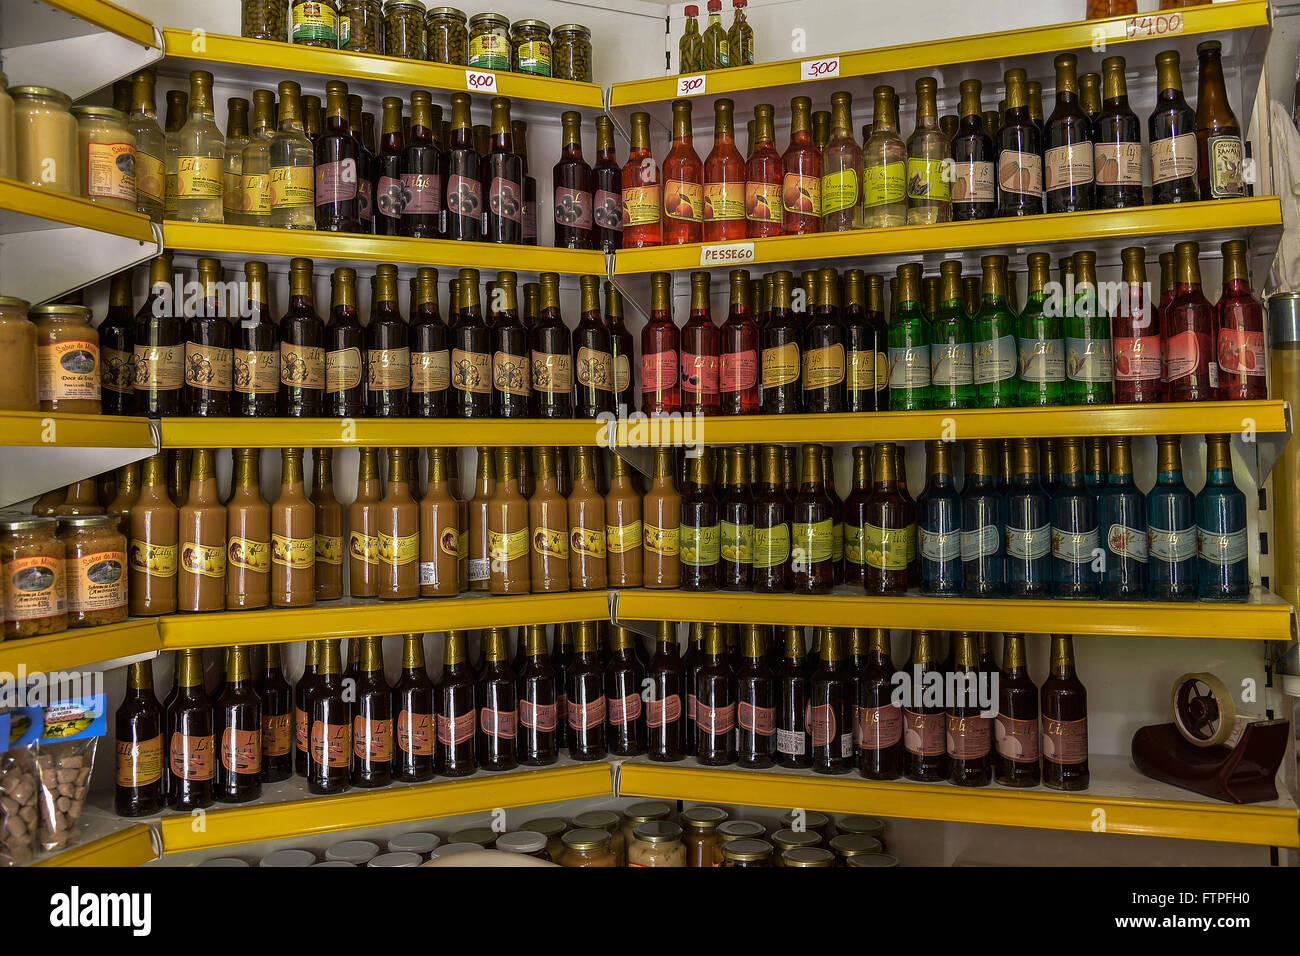 Spirits sold in store in the city center - Stock Image